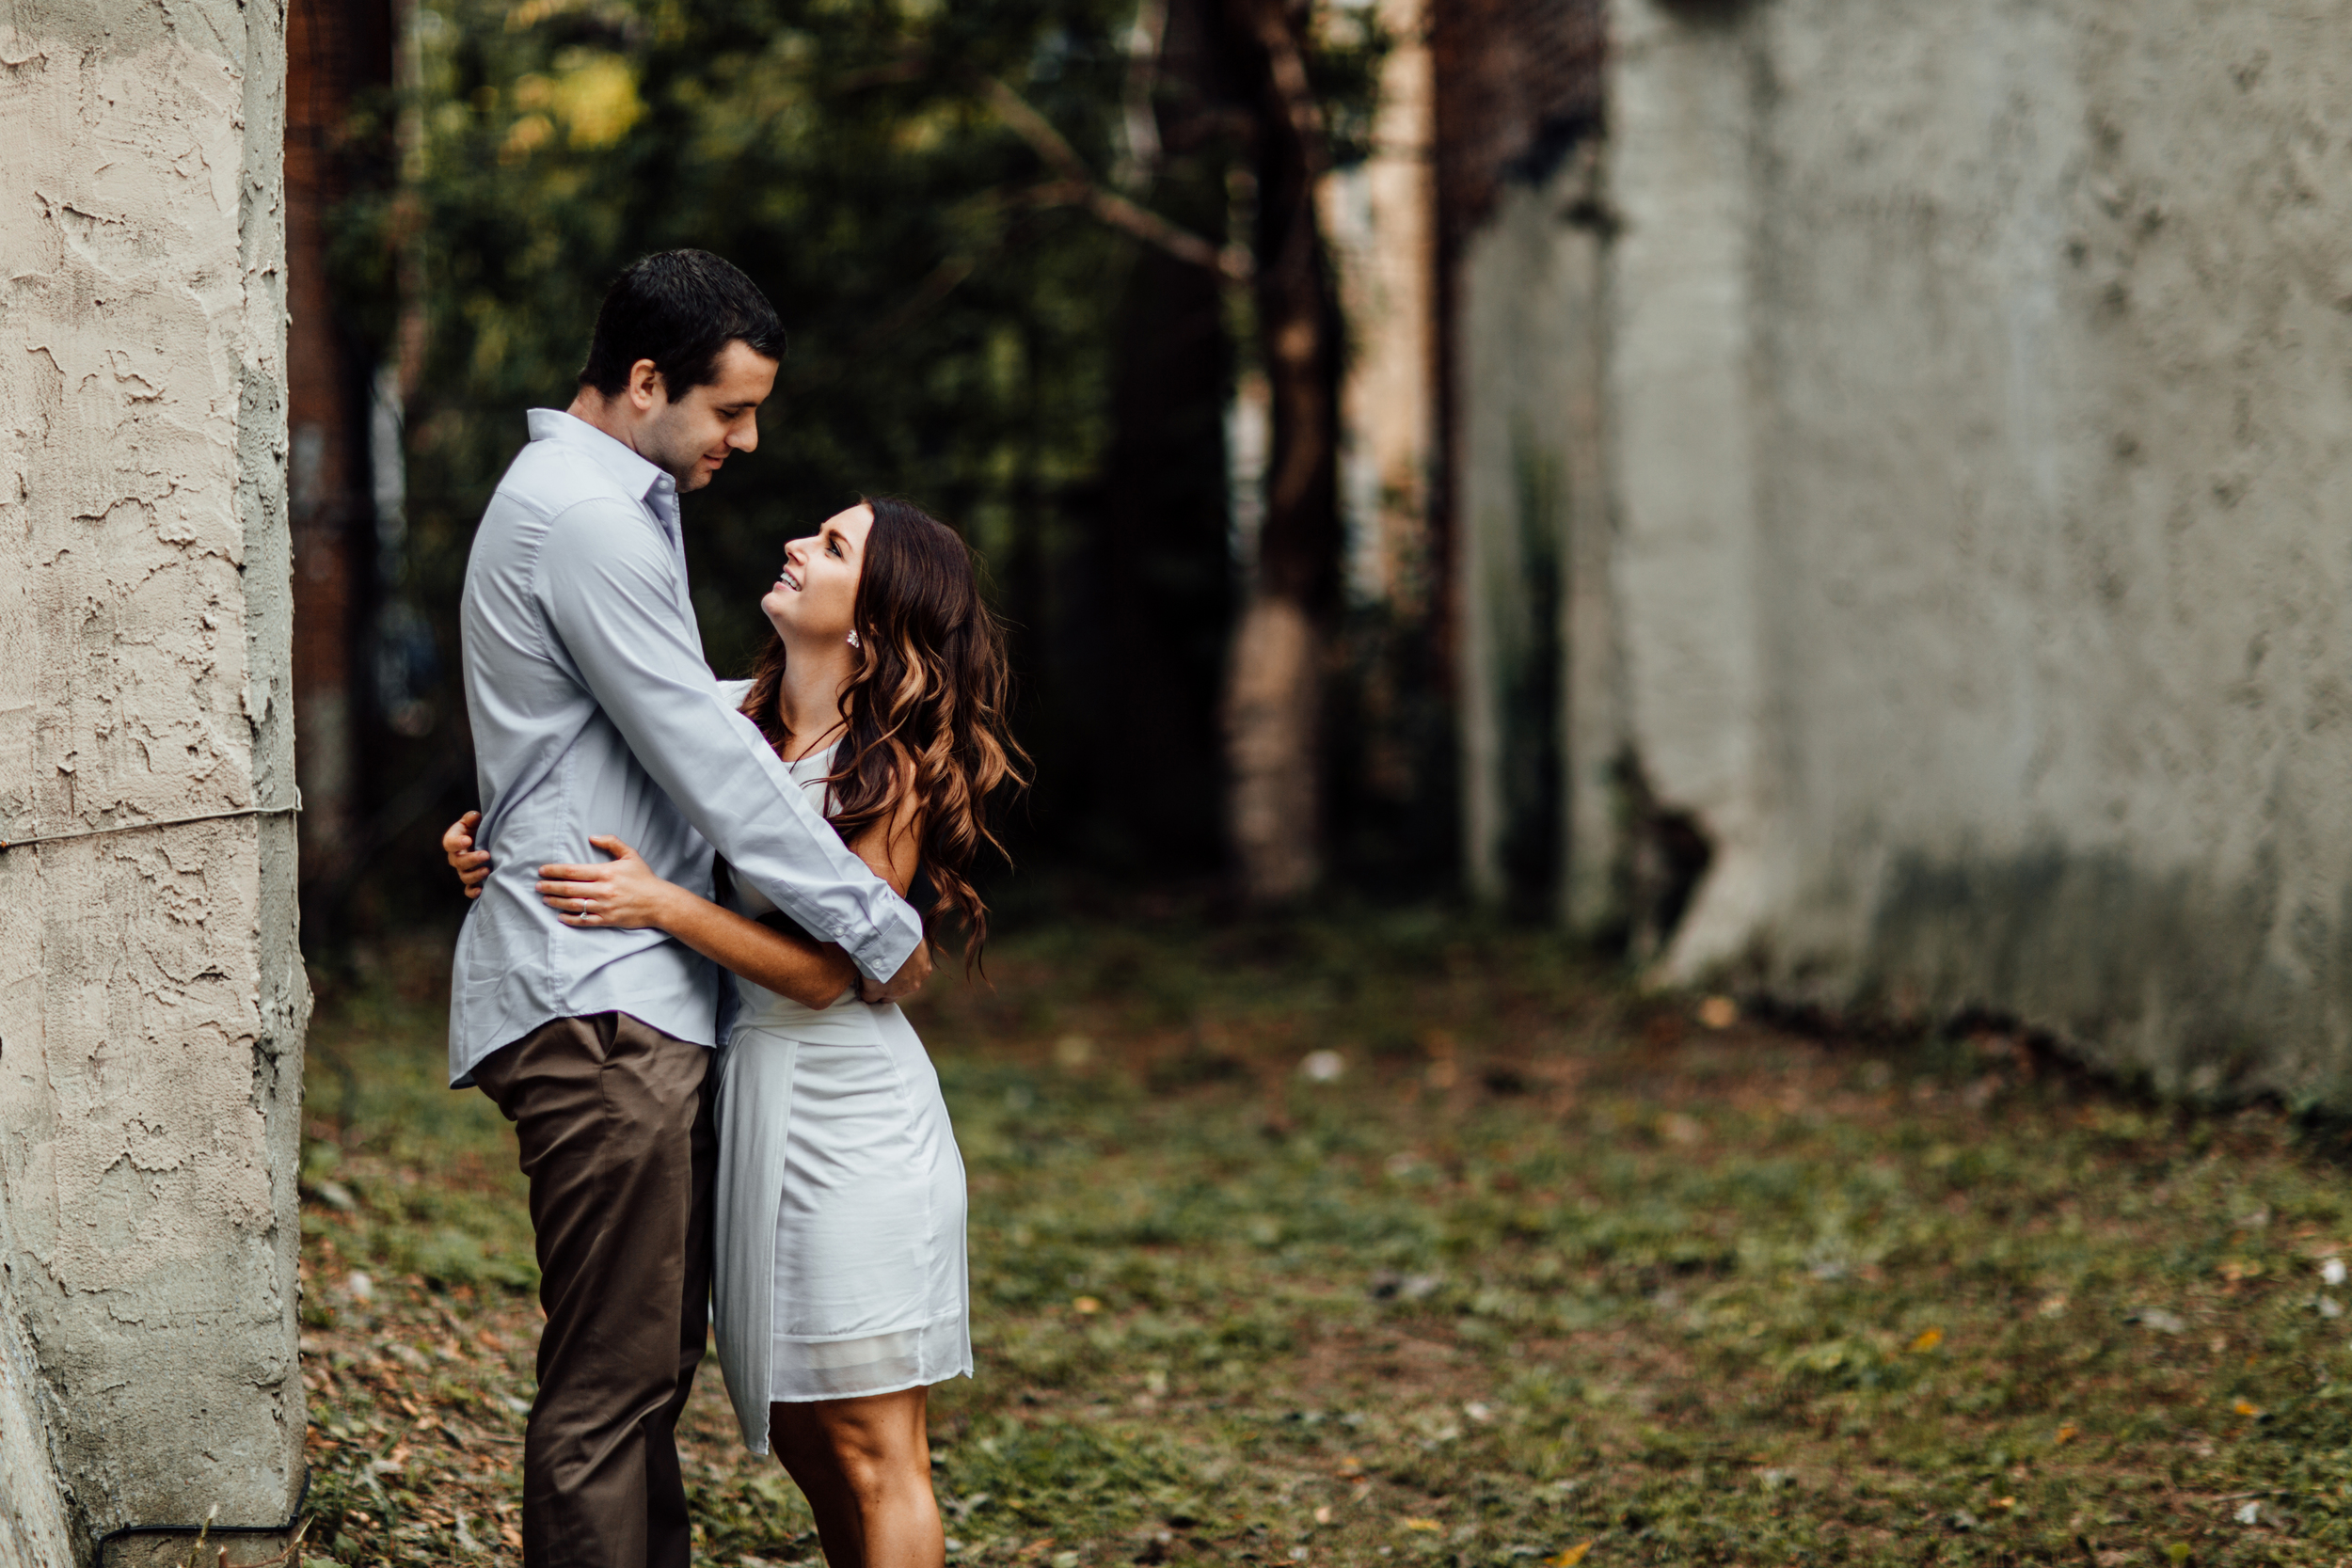 BRITTANYandKEVIN-Engagement2015 (16 of 115).jpg